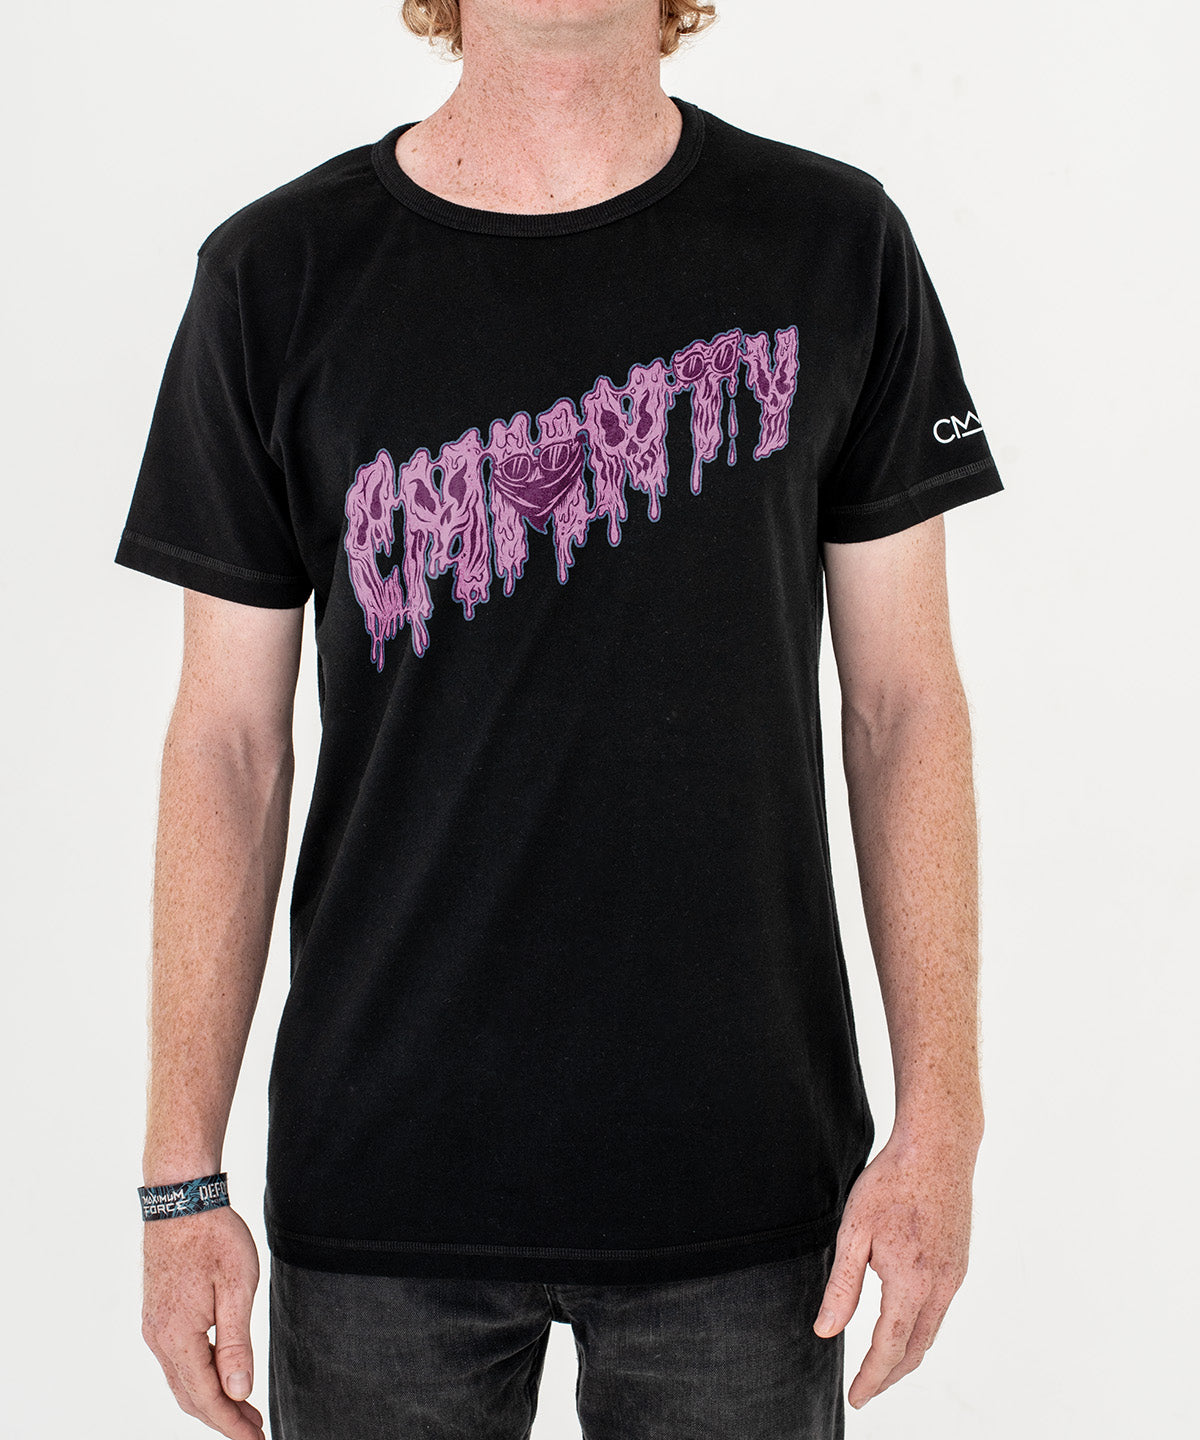 CMMNTY x Ryan Roadkill T-Shirt